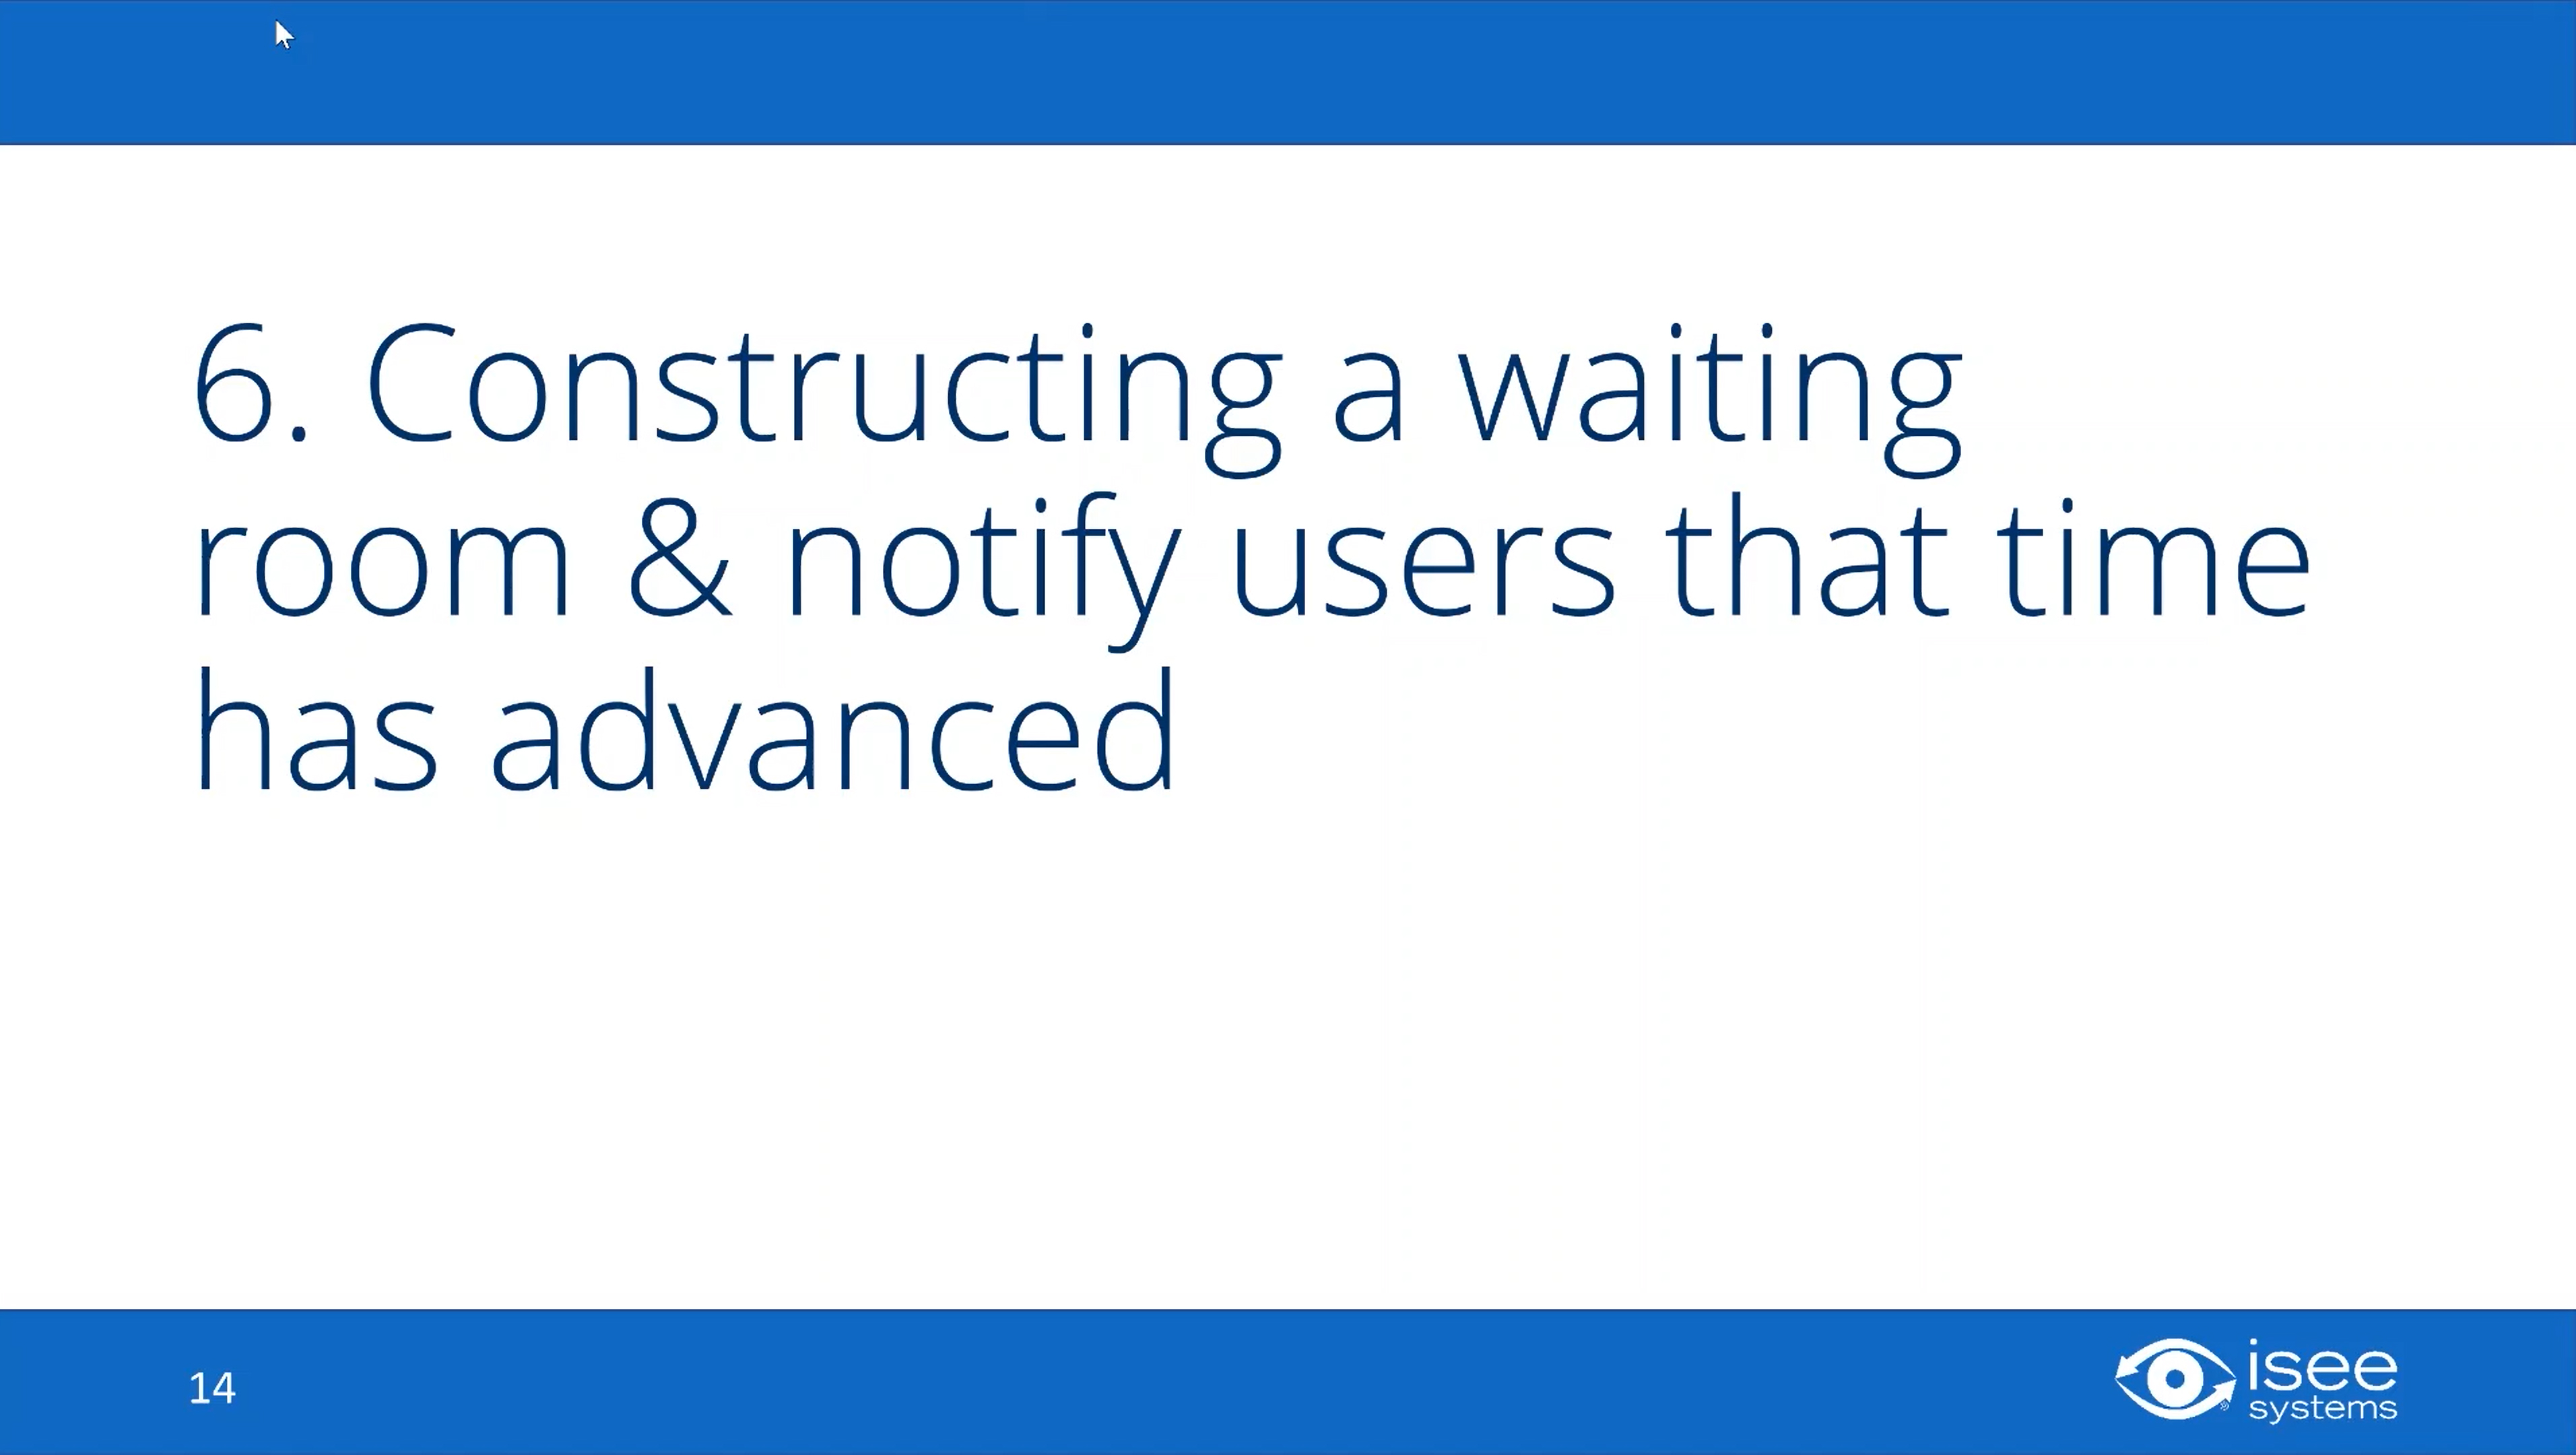 Constructing a Waiting Room & Notify Users That Time Has Advanced